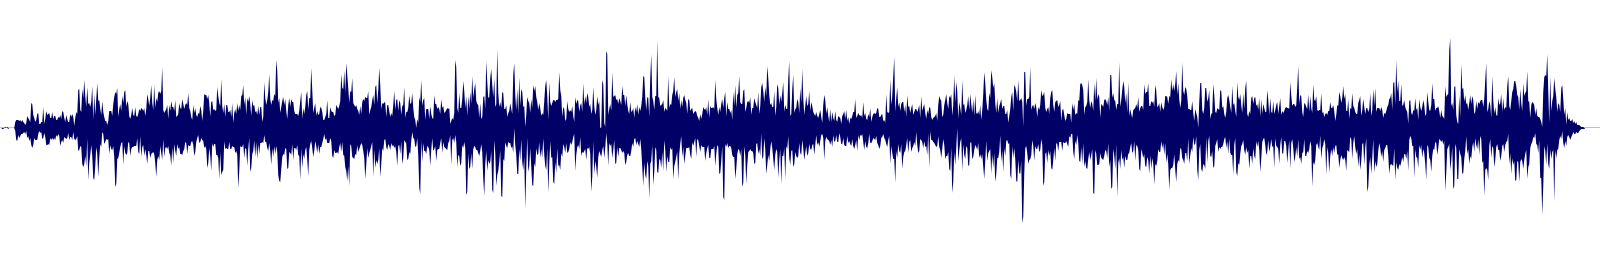 waveform of track #129902